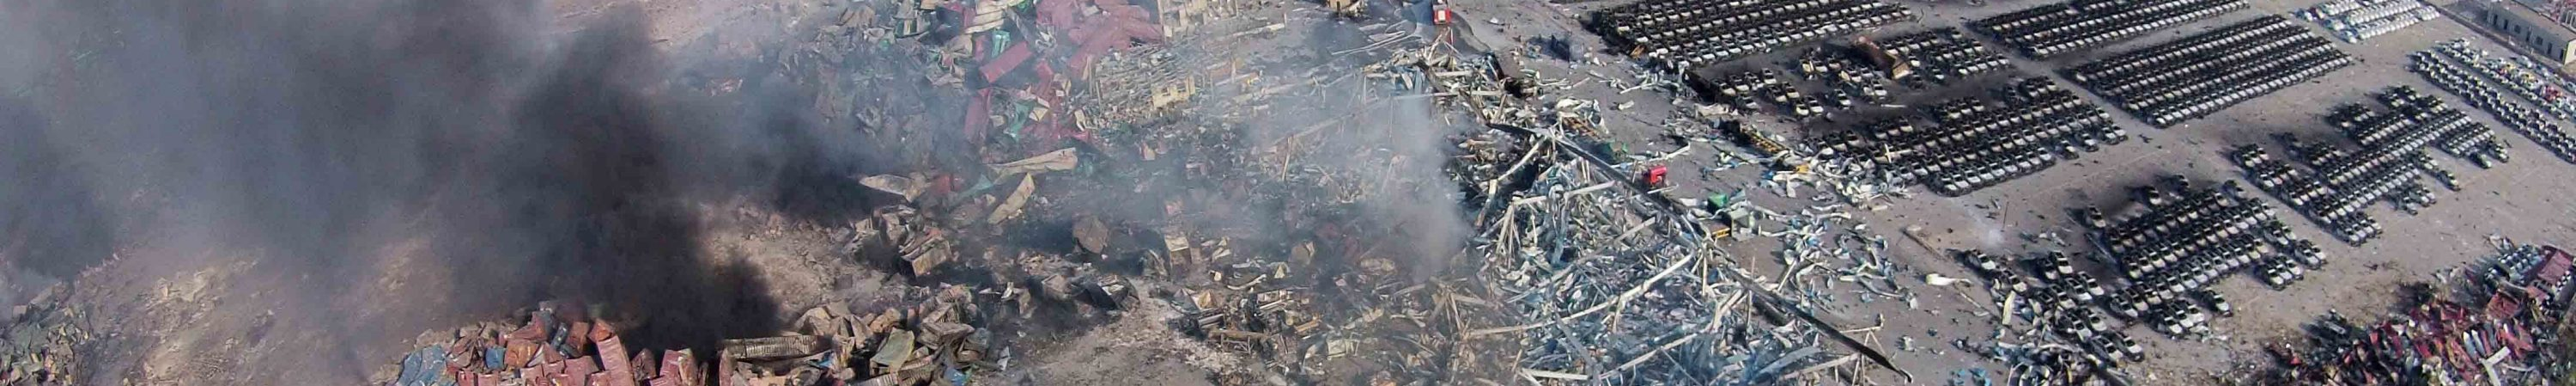 The explosion which struck the Chinese city of Tianjin in August 2015 was certainly not the first of its kind, but it was by far the most devastating. The improper storage of hazardous materials can result in explosions that cause enormous damage over a large radius.